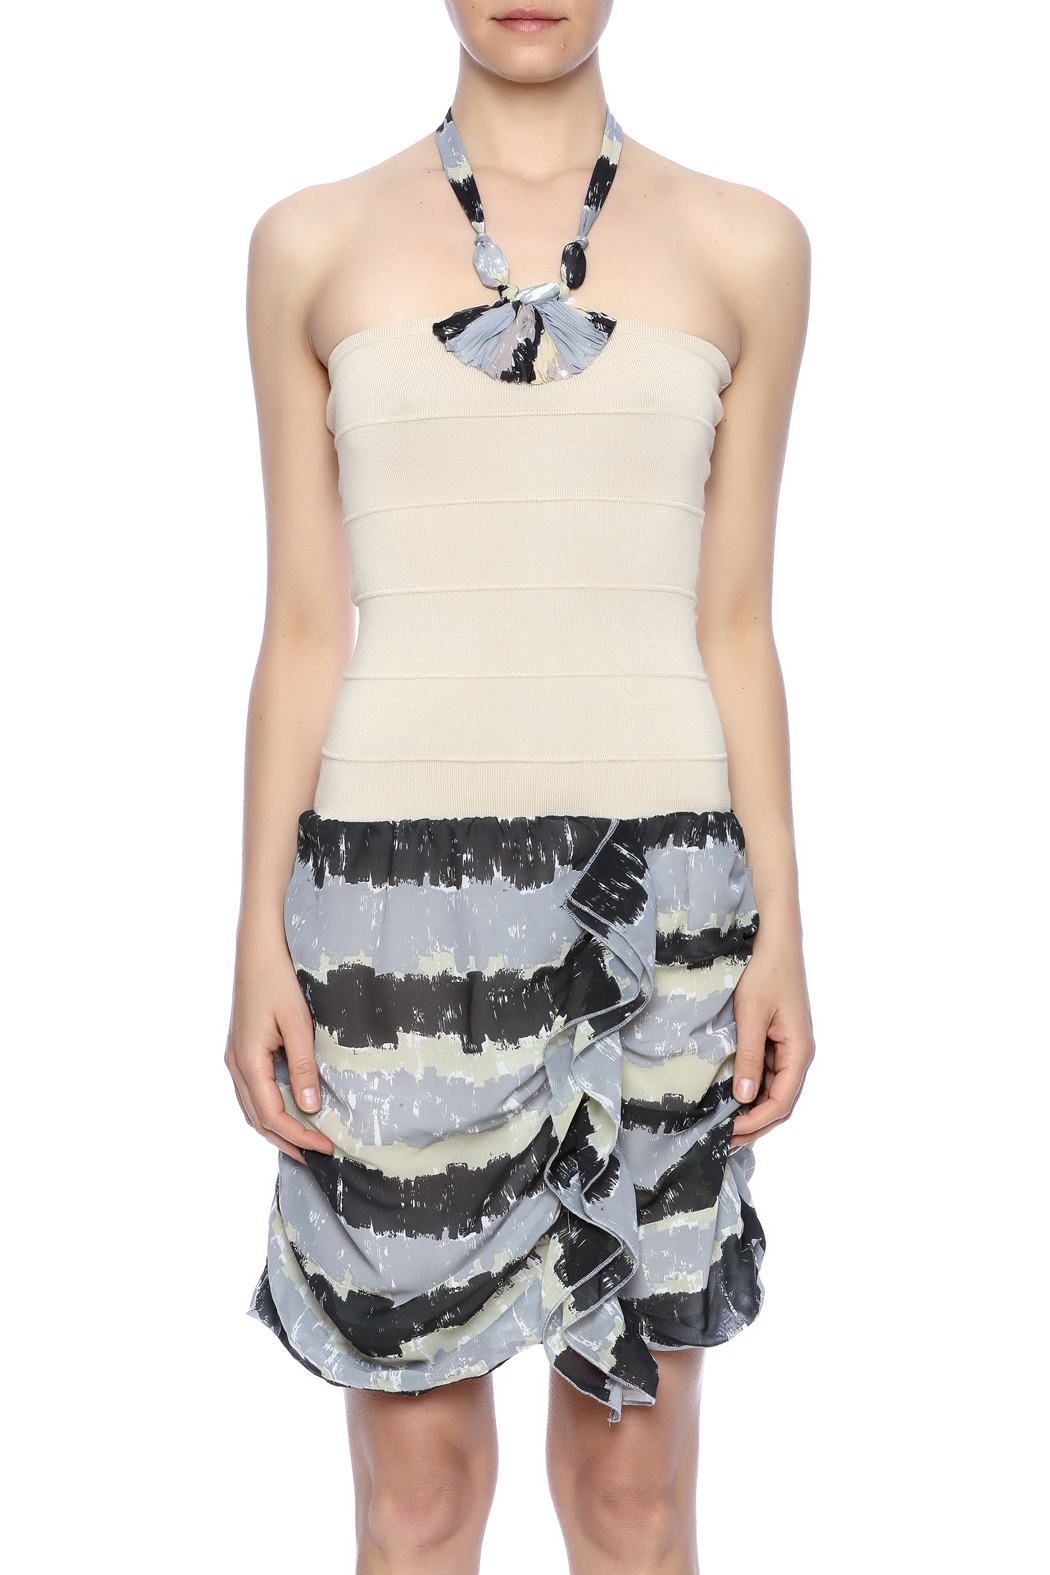 Lulumari Halter dress - Side Cropped Image